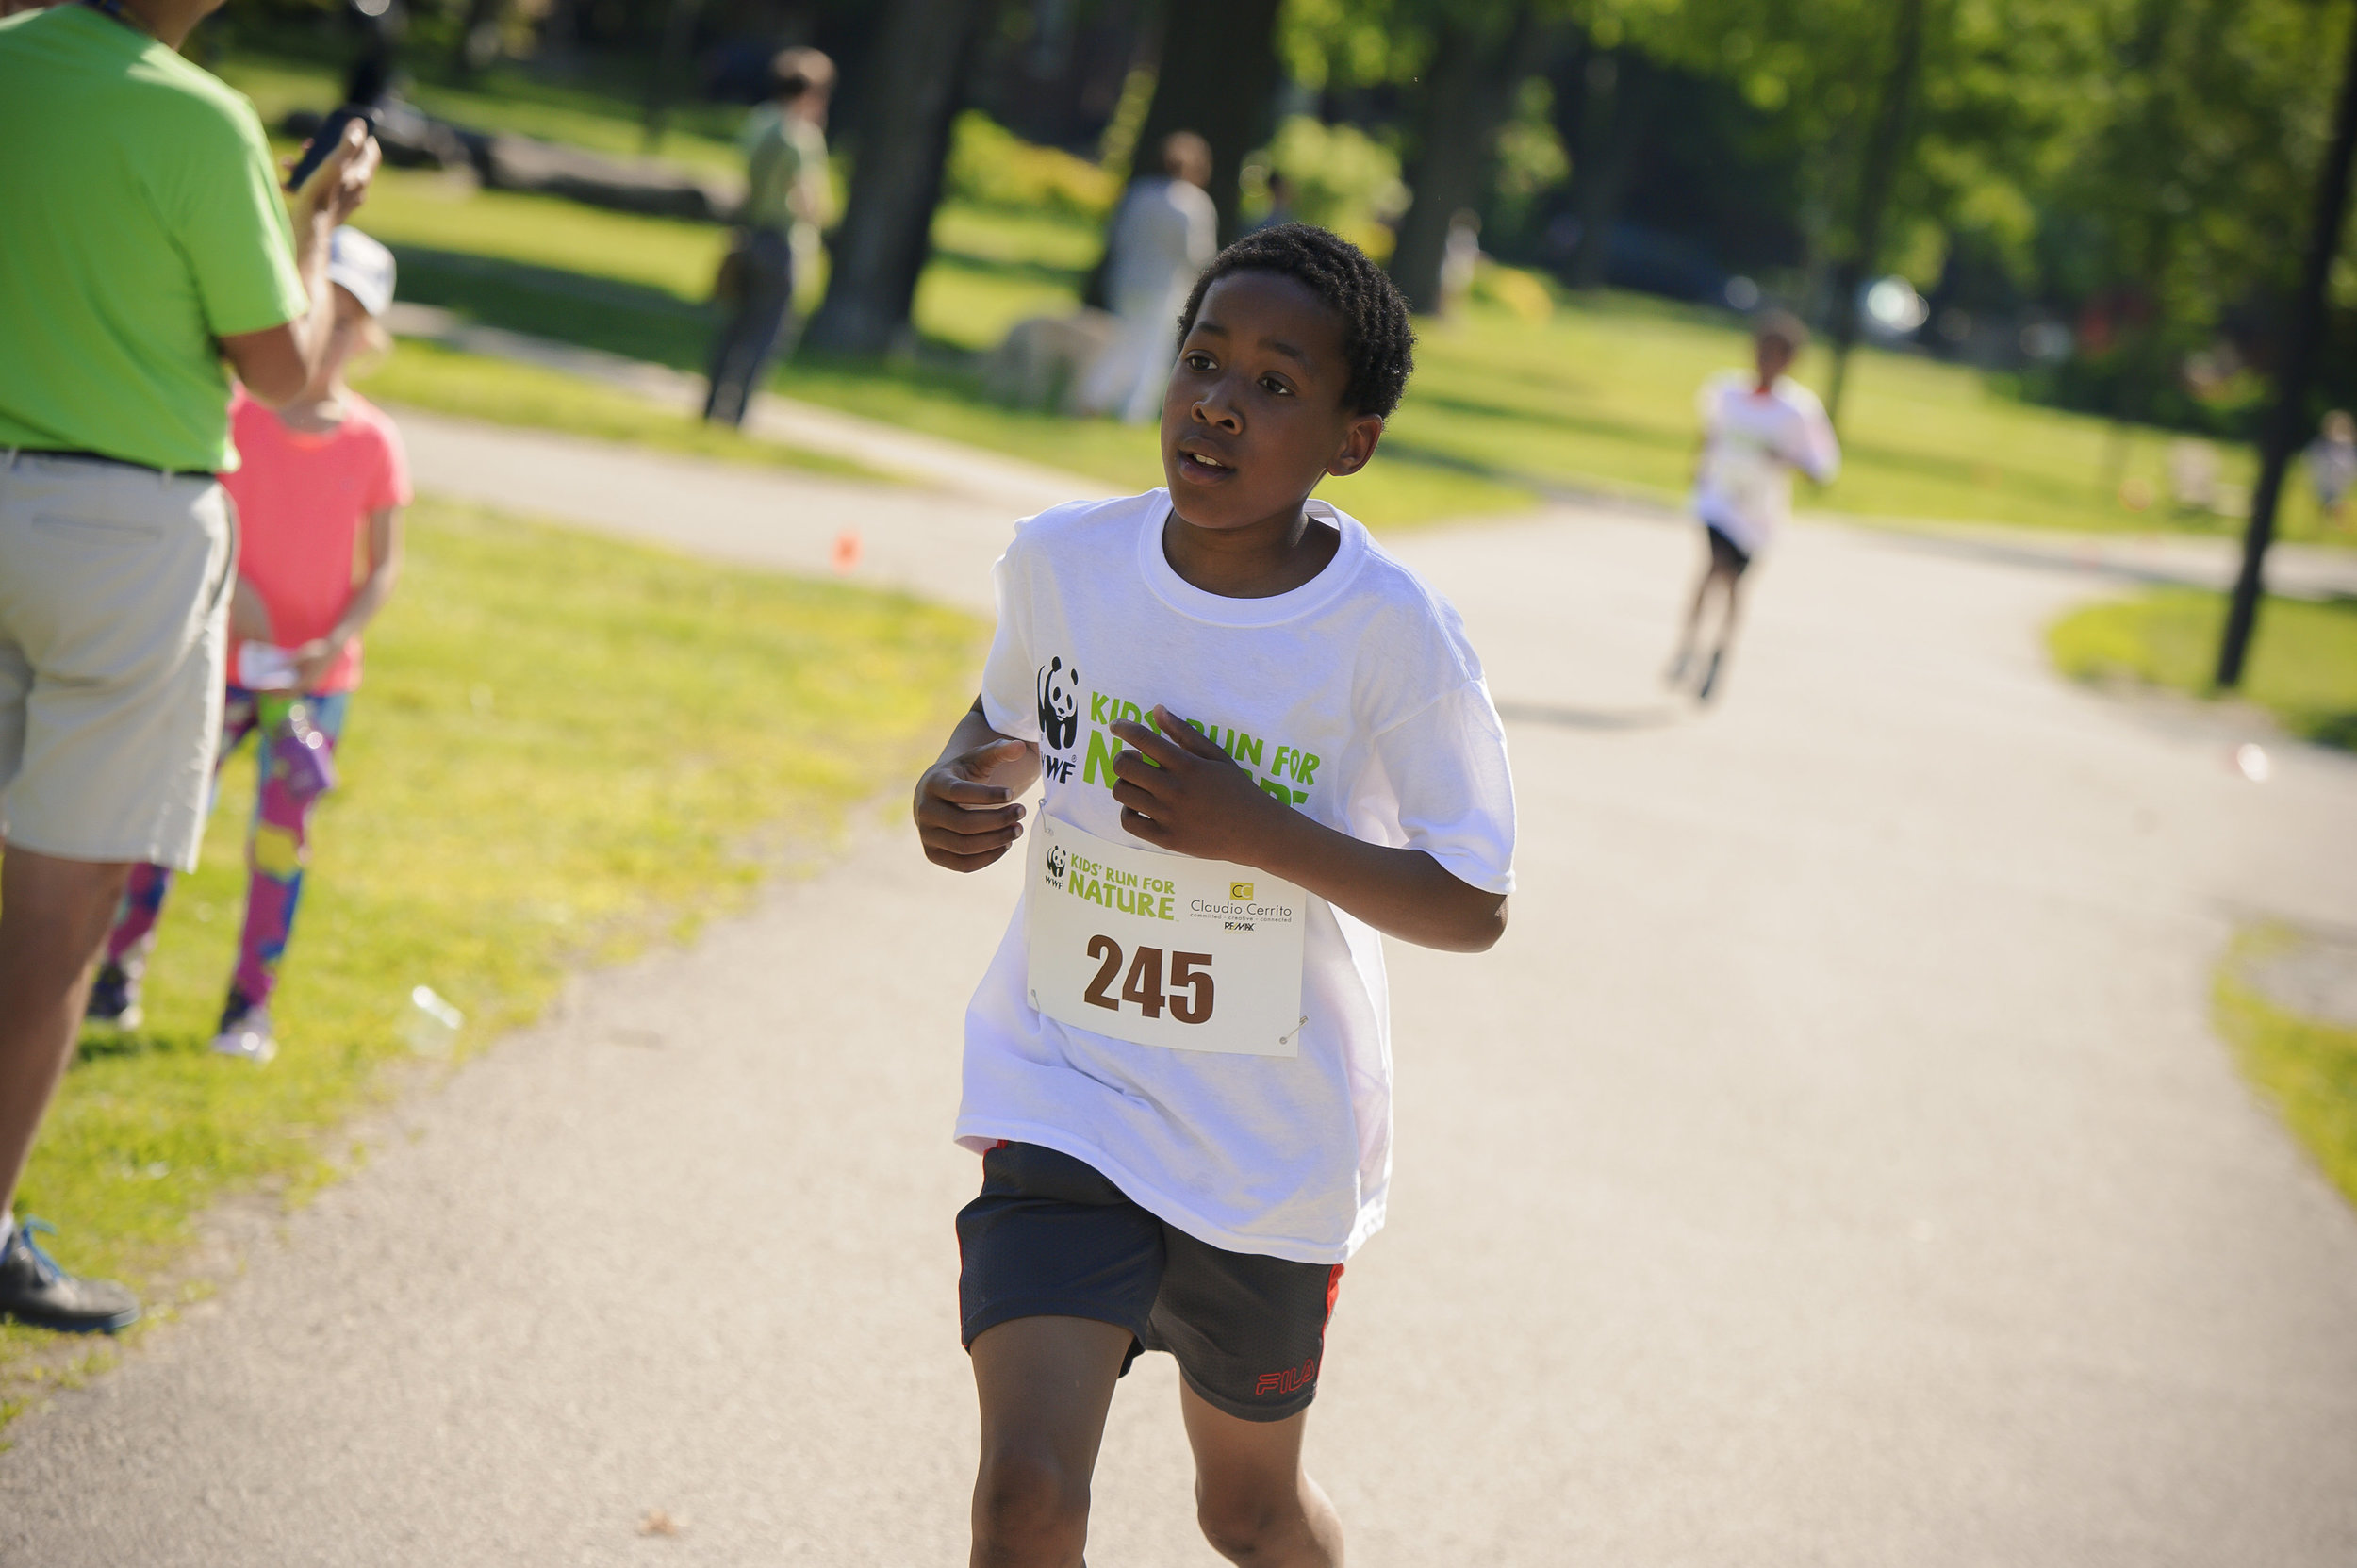 KidsRunForNature2017-Withrow-1165.jpg